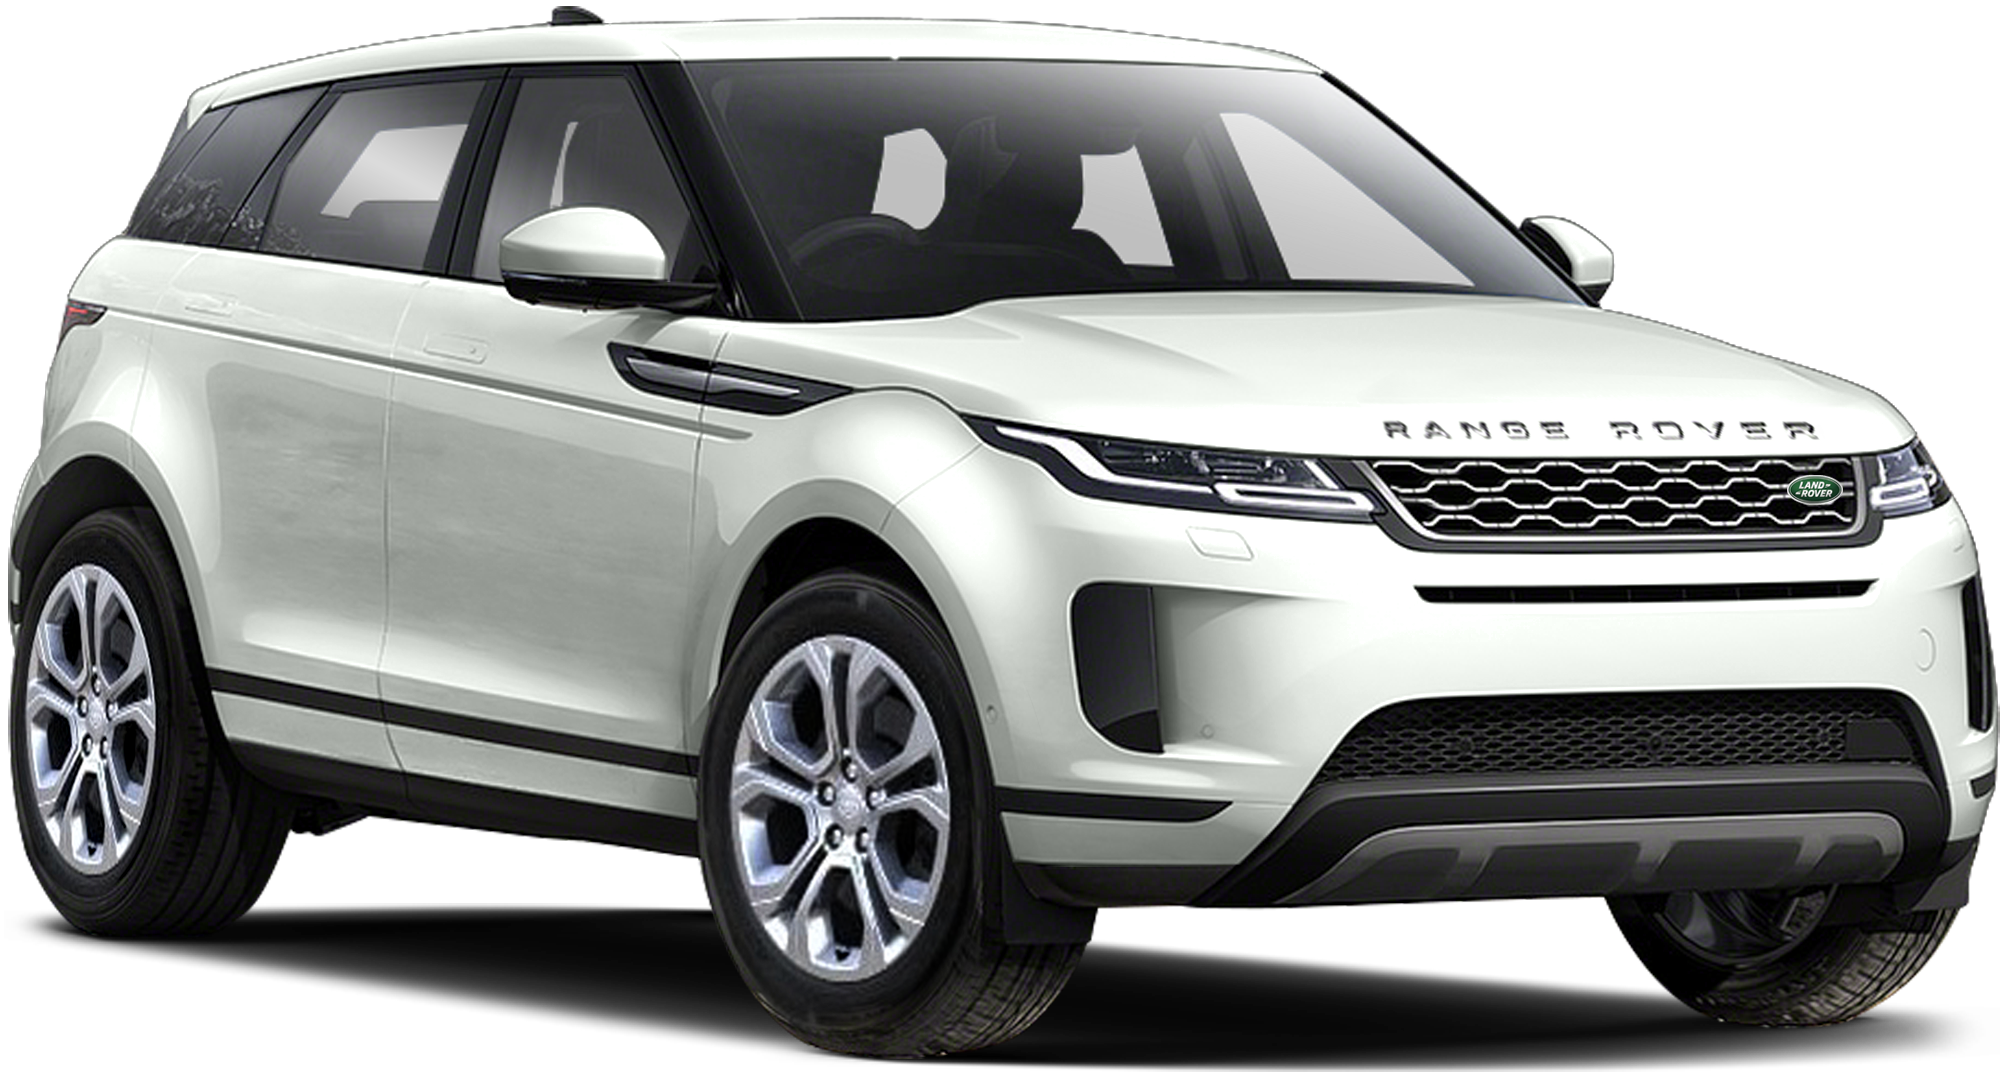 Land Rover Cherry Hill >> 2020 Land Rover Range Rover Evoque Incentives, Specials ...